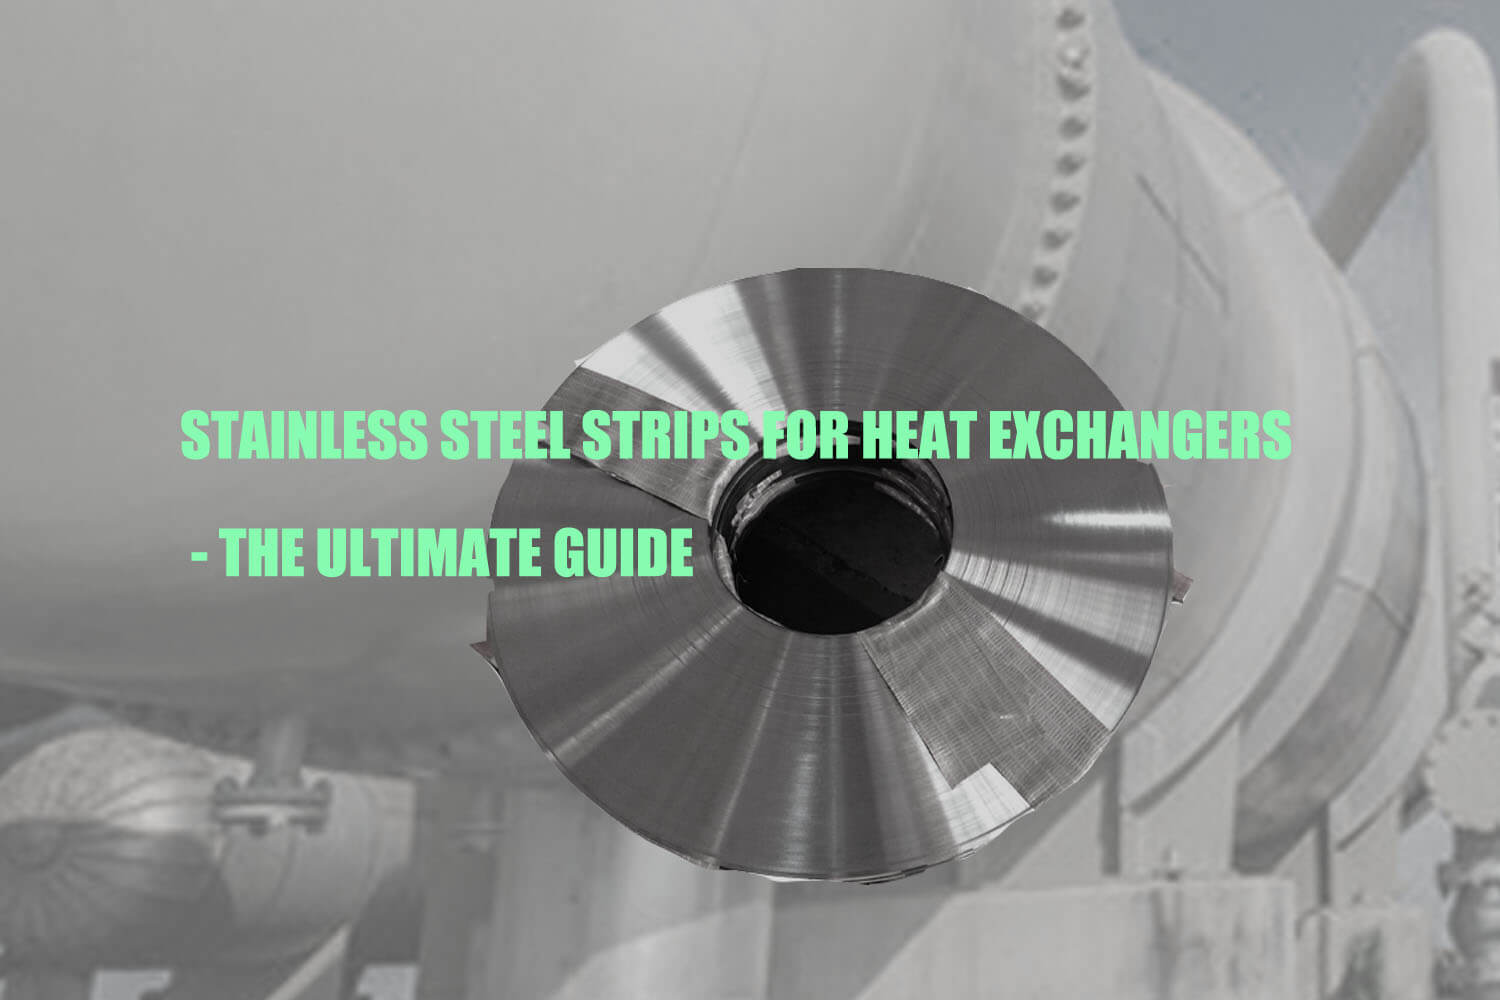 stainless-steel-strips-for-heat-exchangers